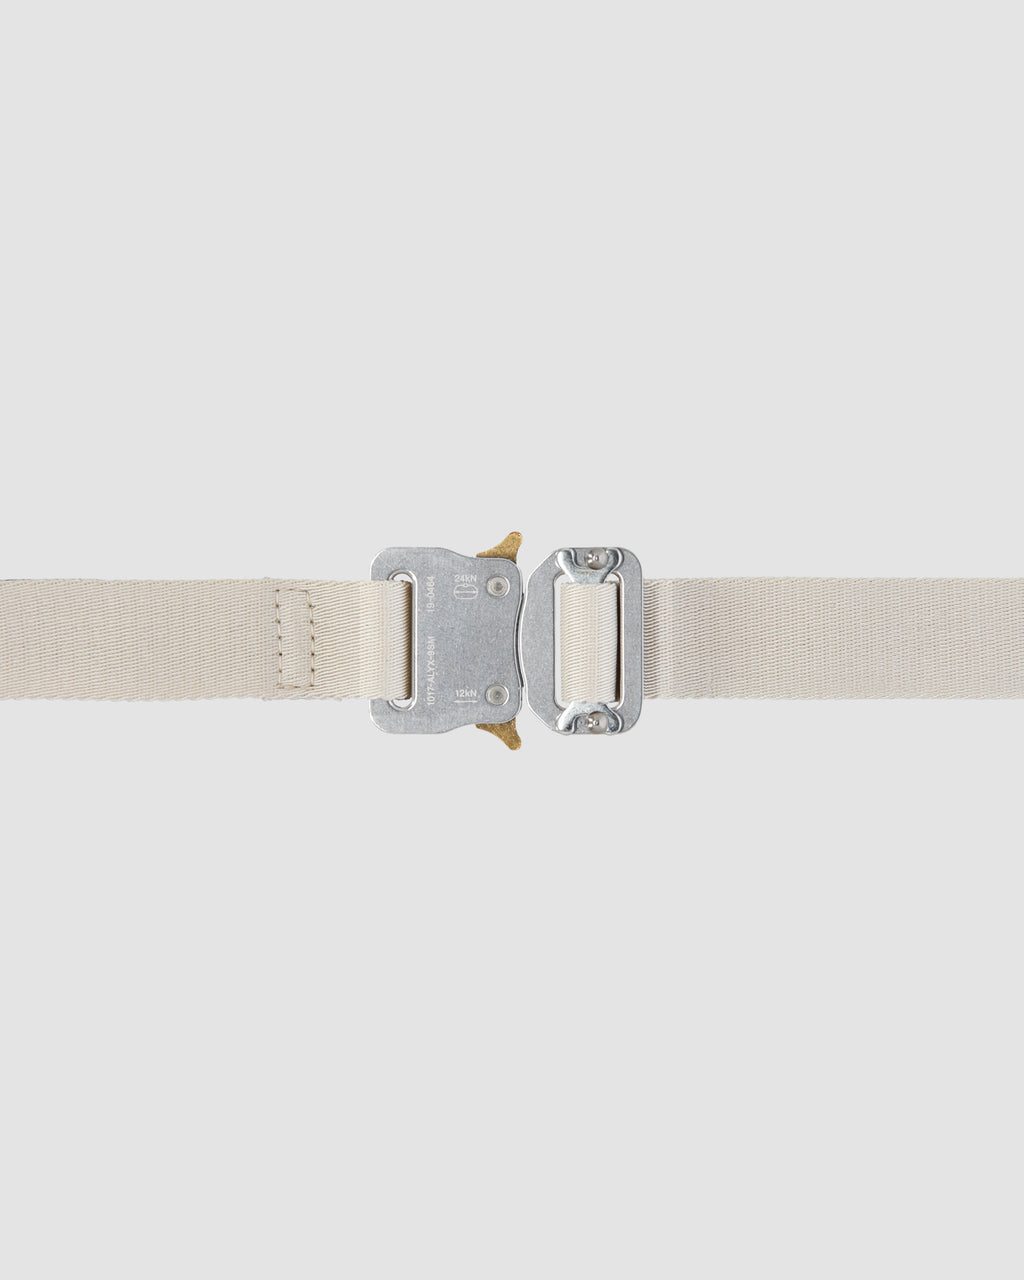 1017 ALYX 9SM | MEDIUM ROLLERCOASTER BELT | Belt | Accessories, Belt, F19, Man, Tan, Woman